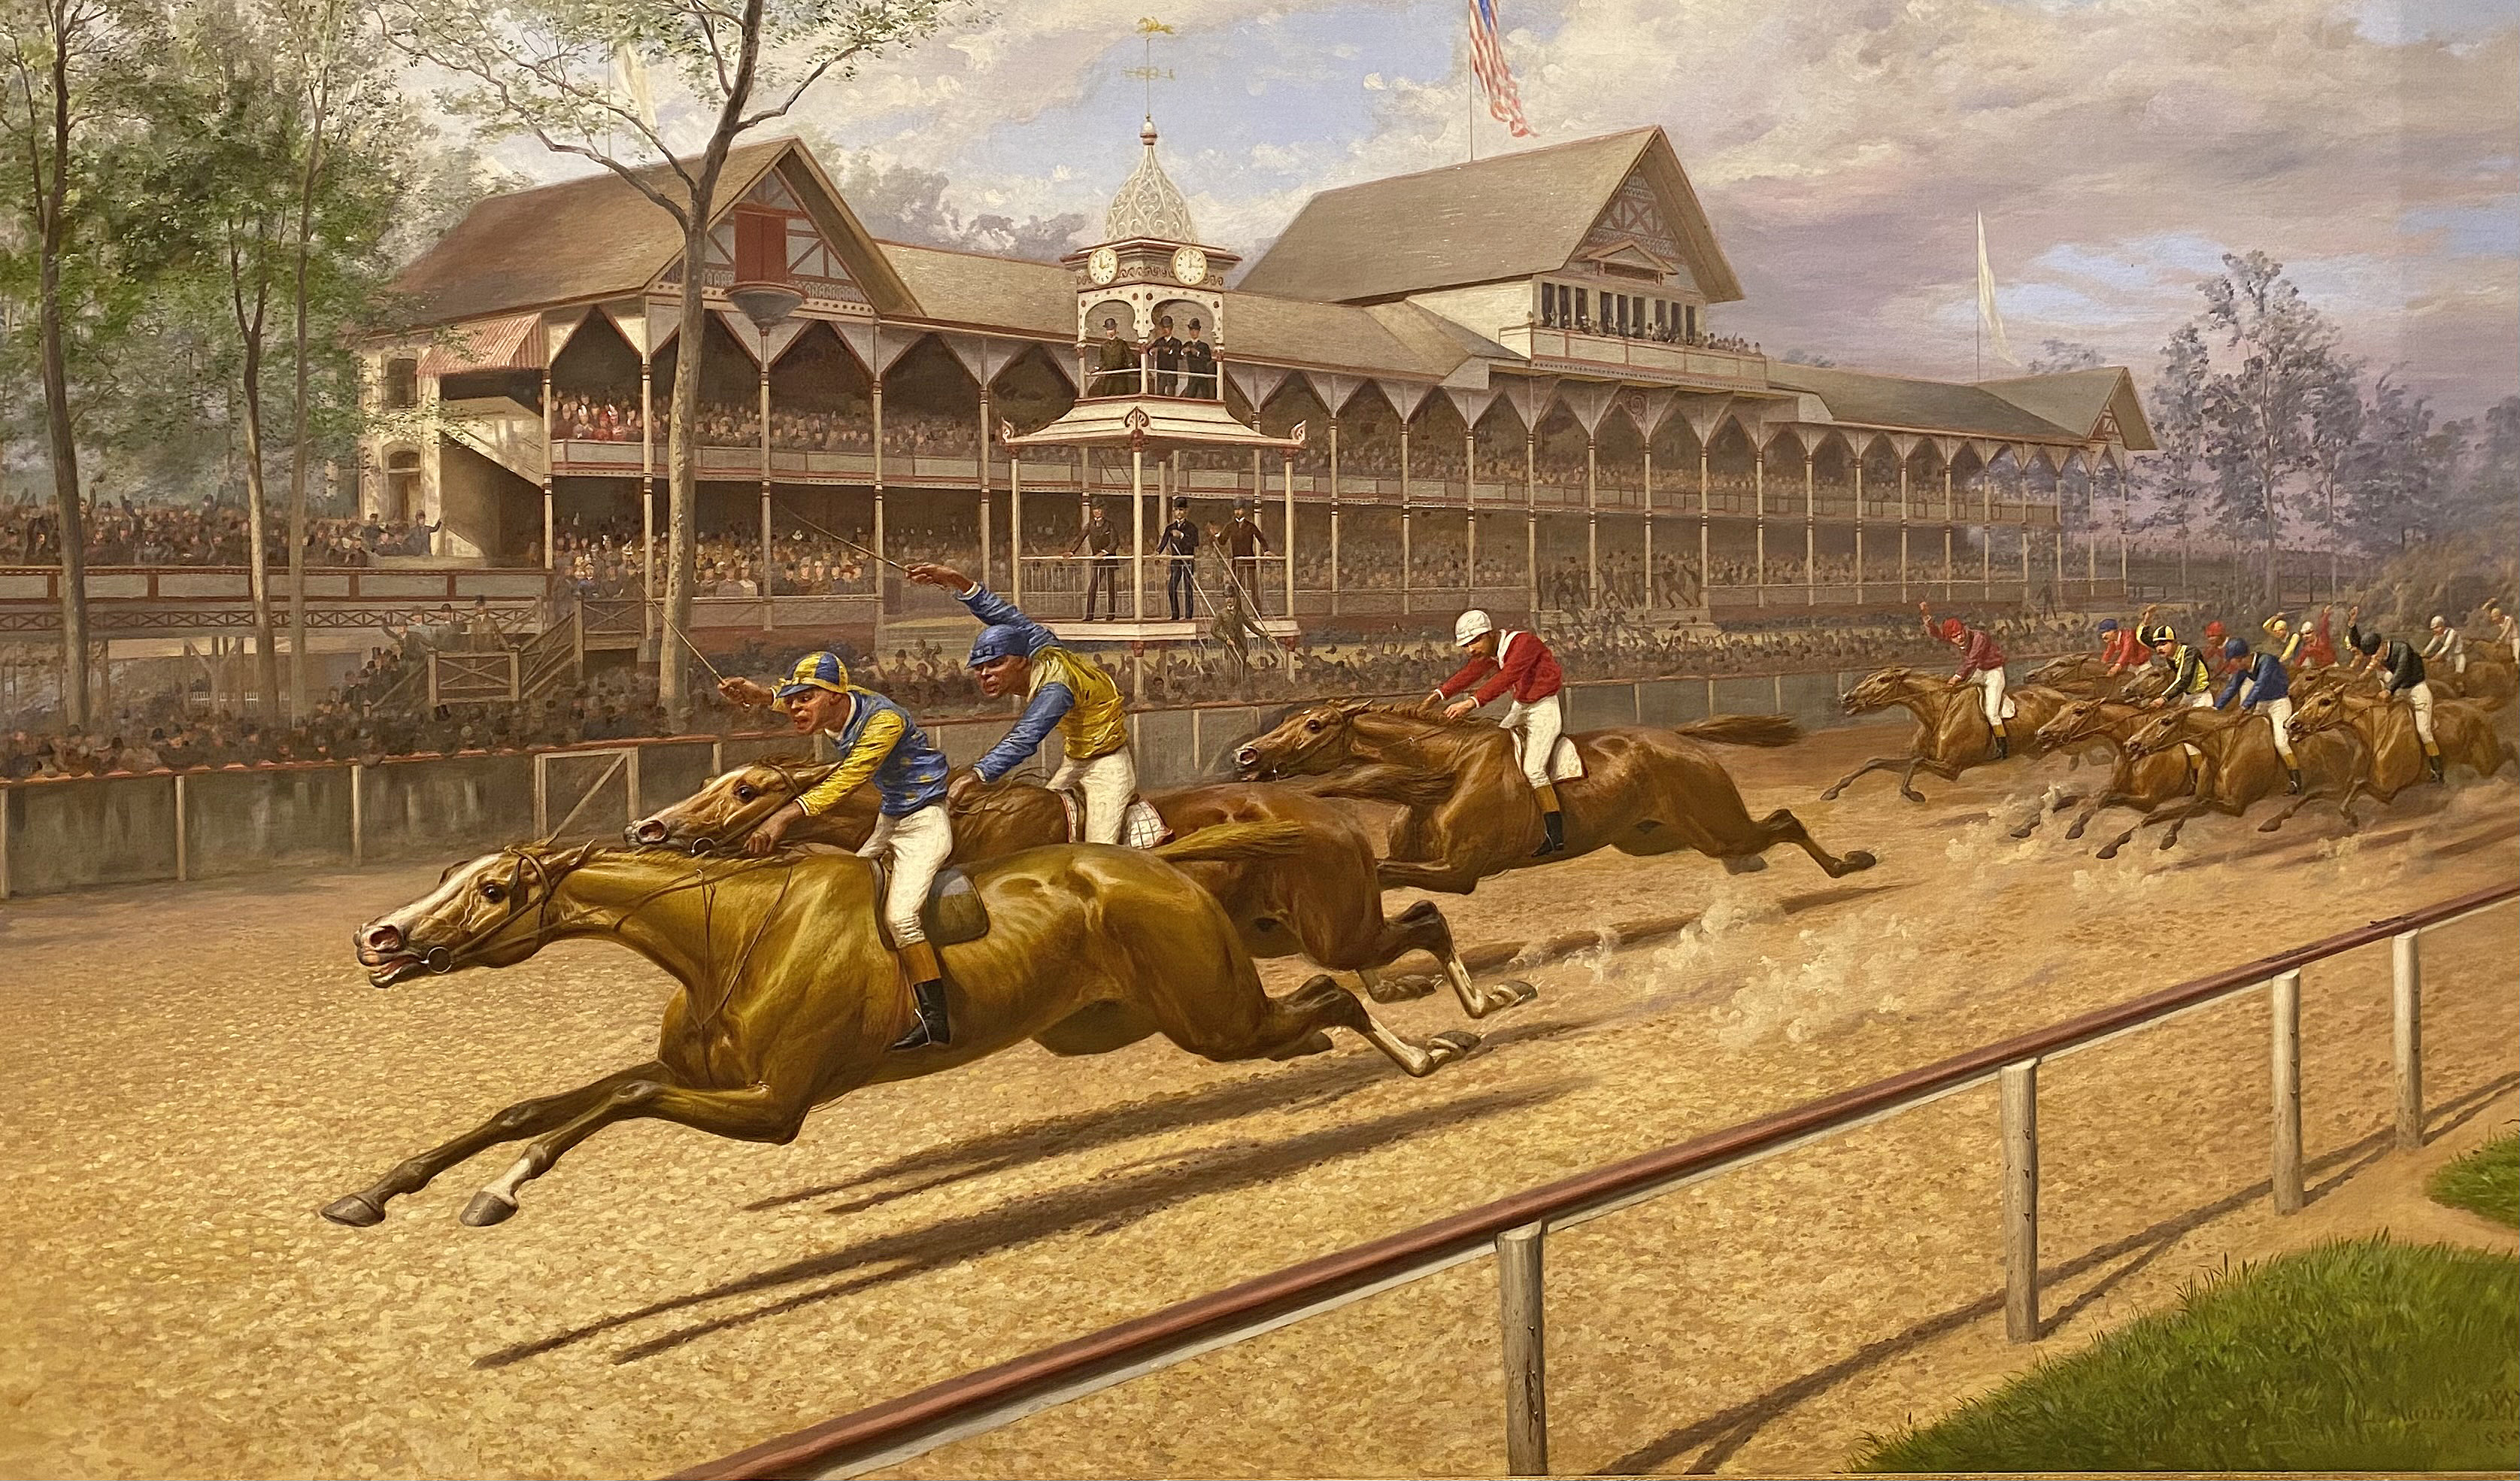 """First Futurity by L. Maurer, 1889: Proctor Knott with Shelby """"Pike"""" Barnes in front winning the race (Museum Collection)"""